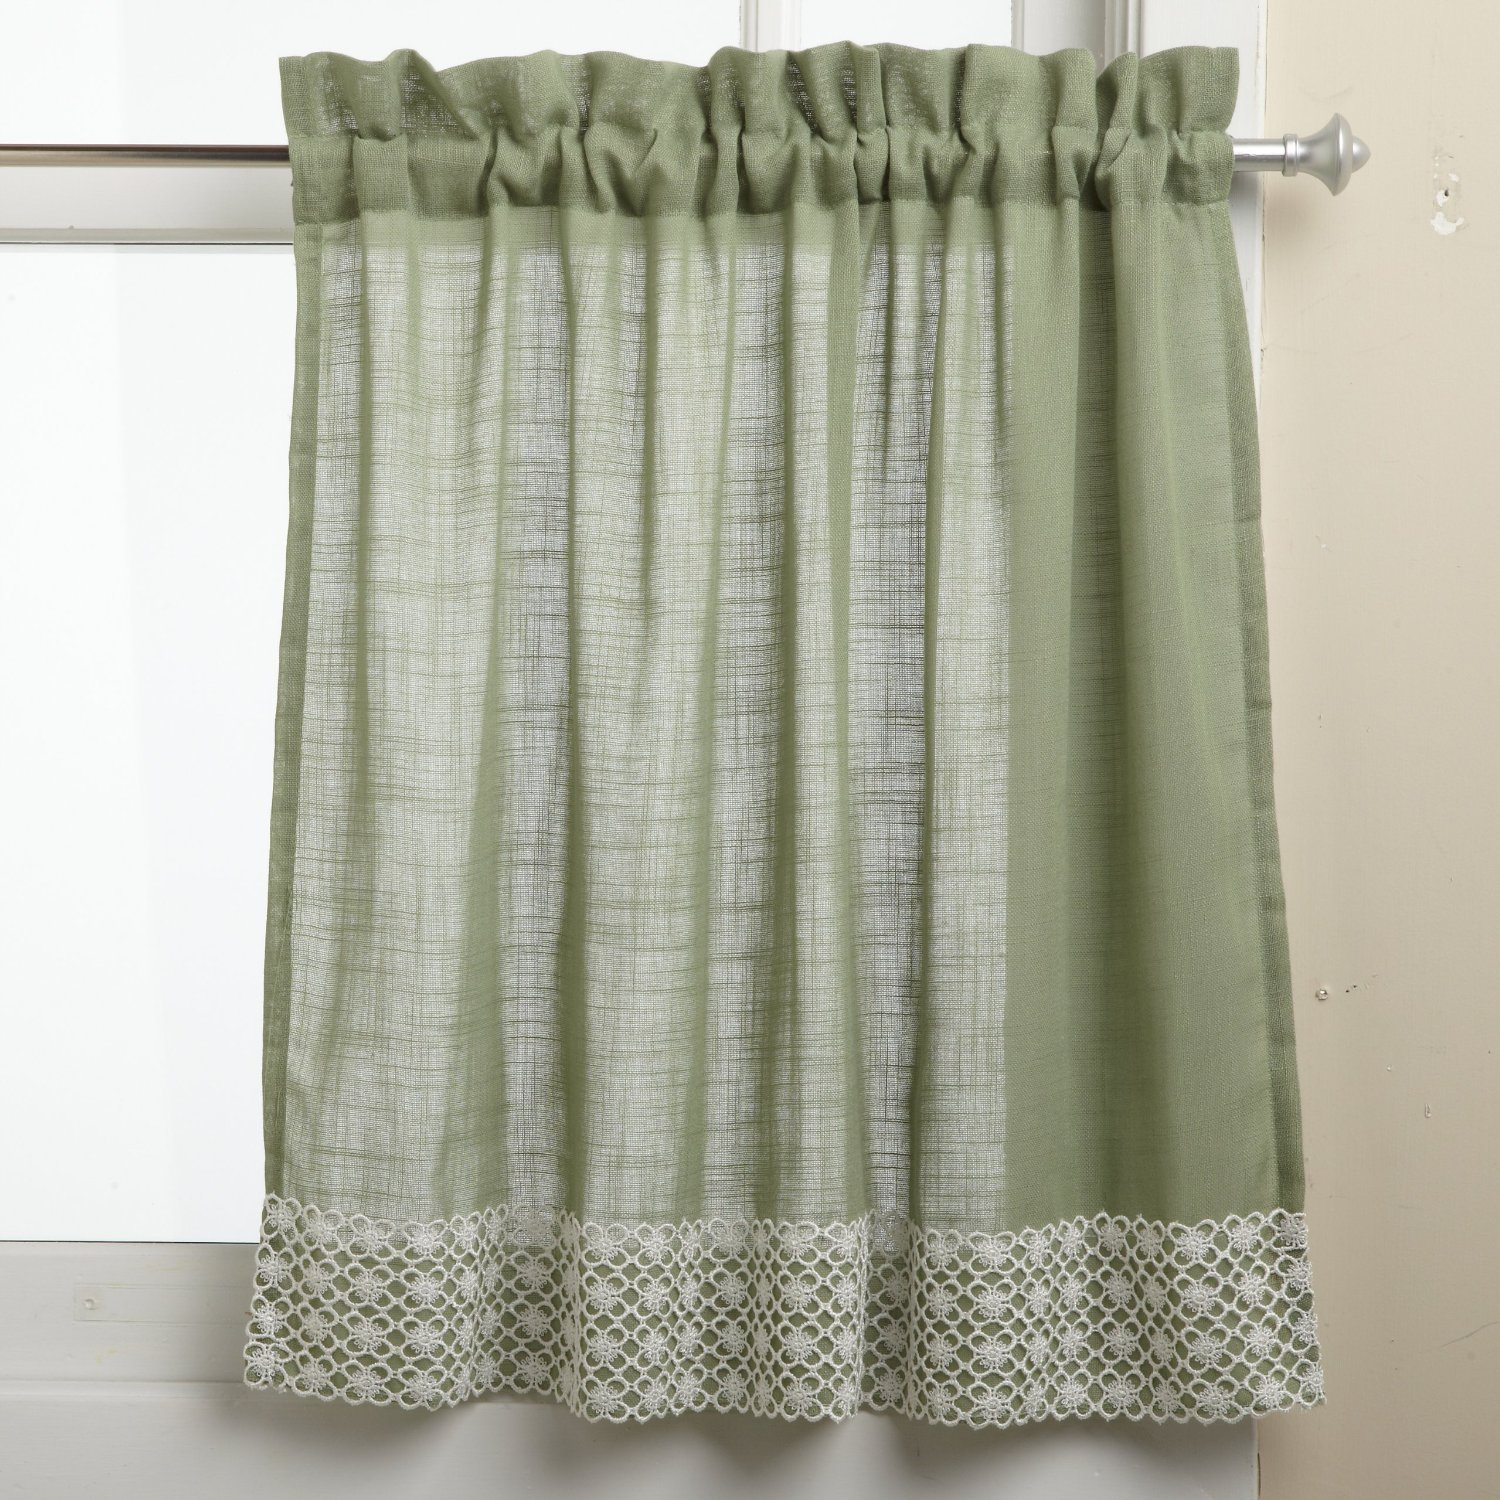 Panels Ch And Irish For Fabric Bathroom Doors Swags Window In Sheer Lace Elongated Kitchen Curtain Tier Pairs (View 16 of 20)